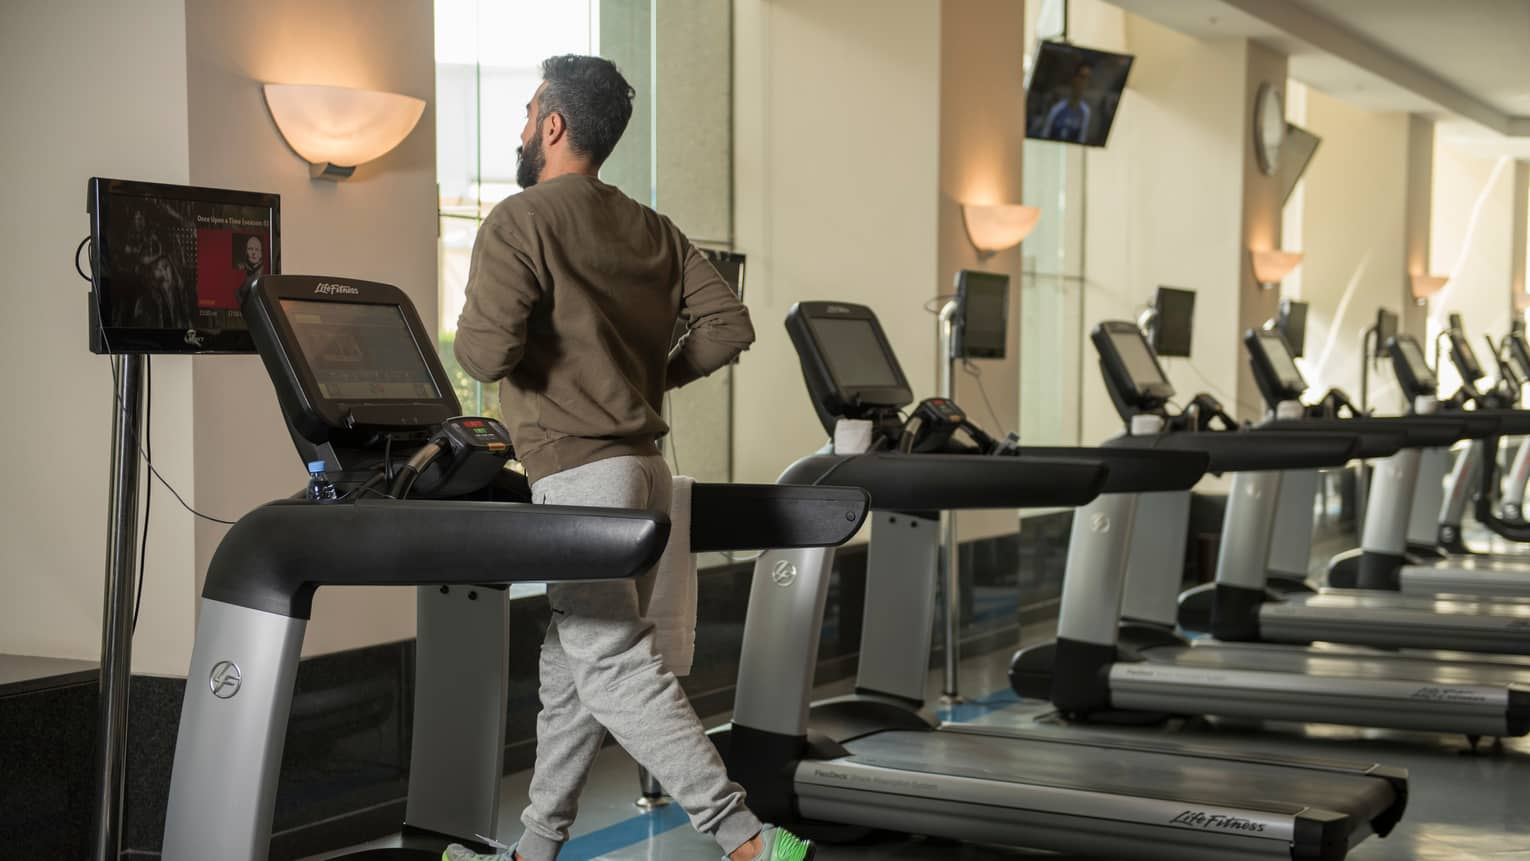 Back of man in sweatshirt and sweatpants as he runs on treadmill in gym next to row of cardio machines